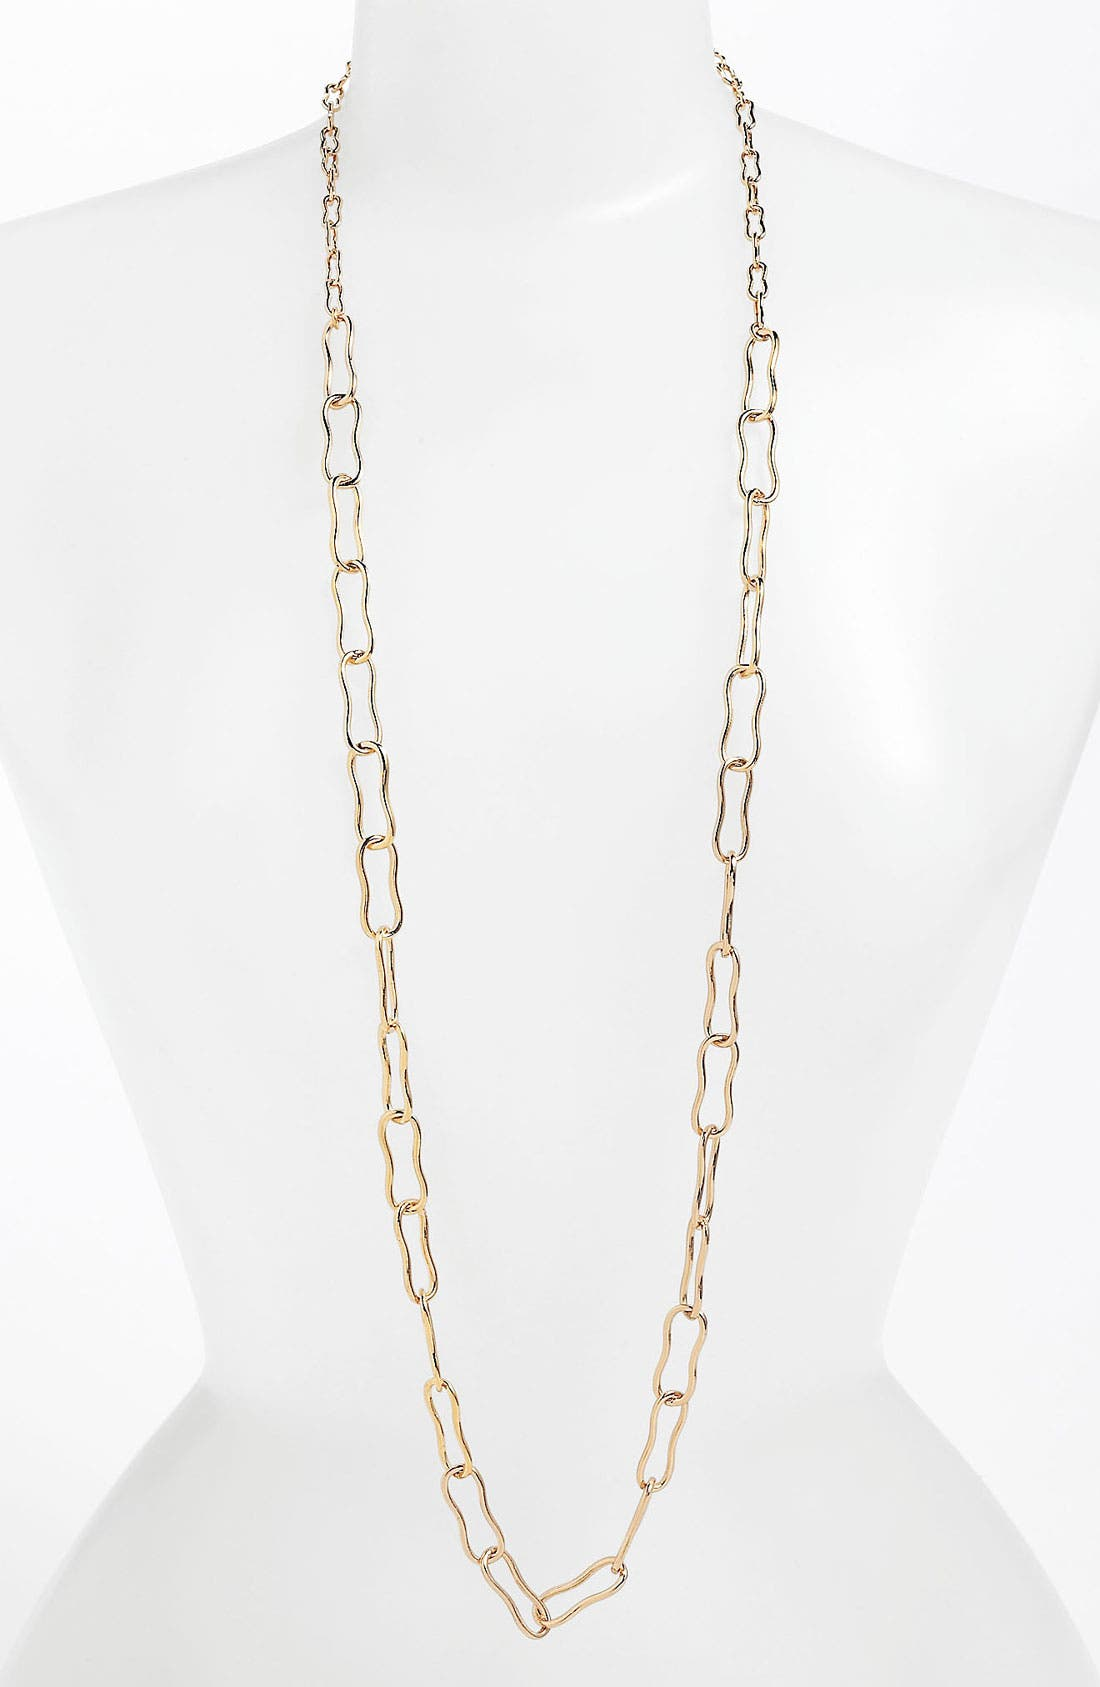 Main Image - Kelly Wearstler Bent Link Chain Necklace